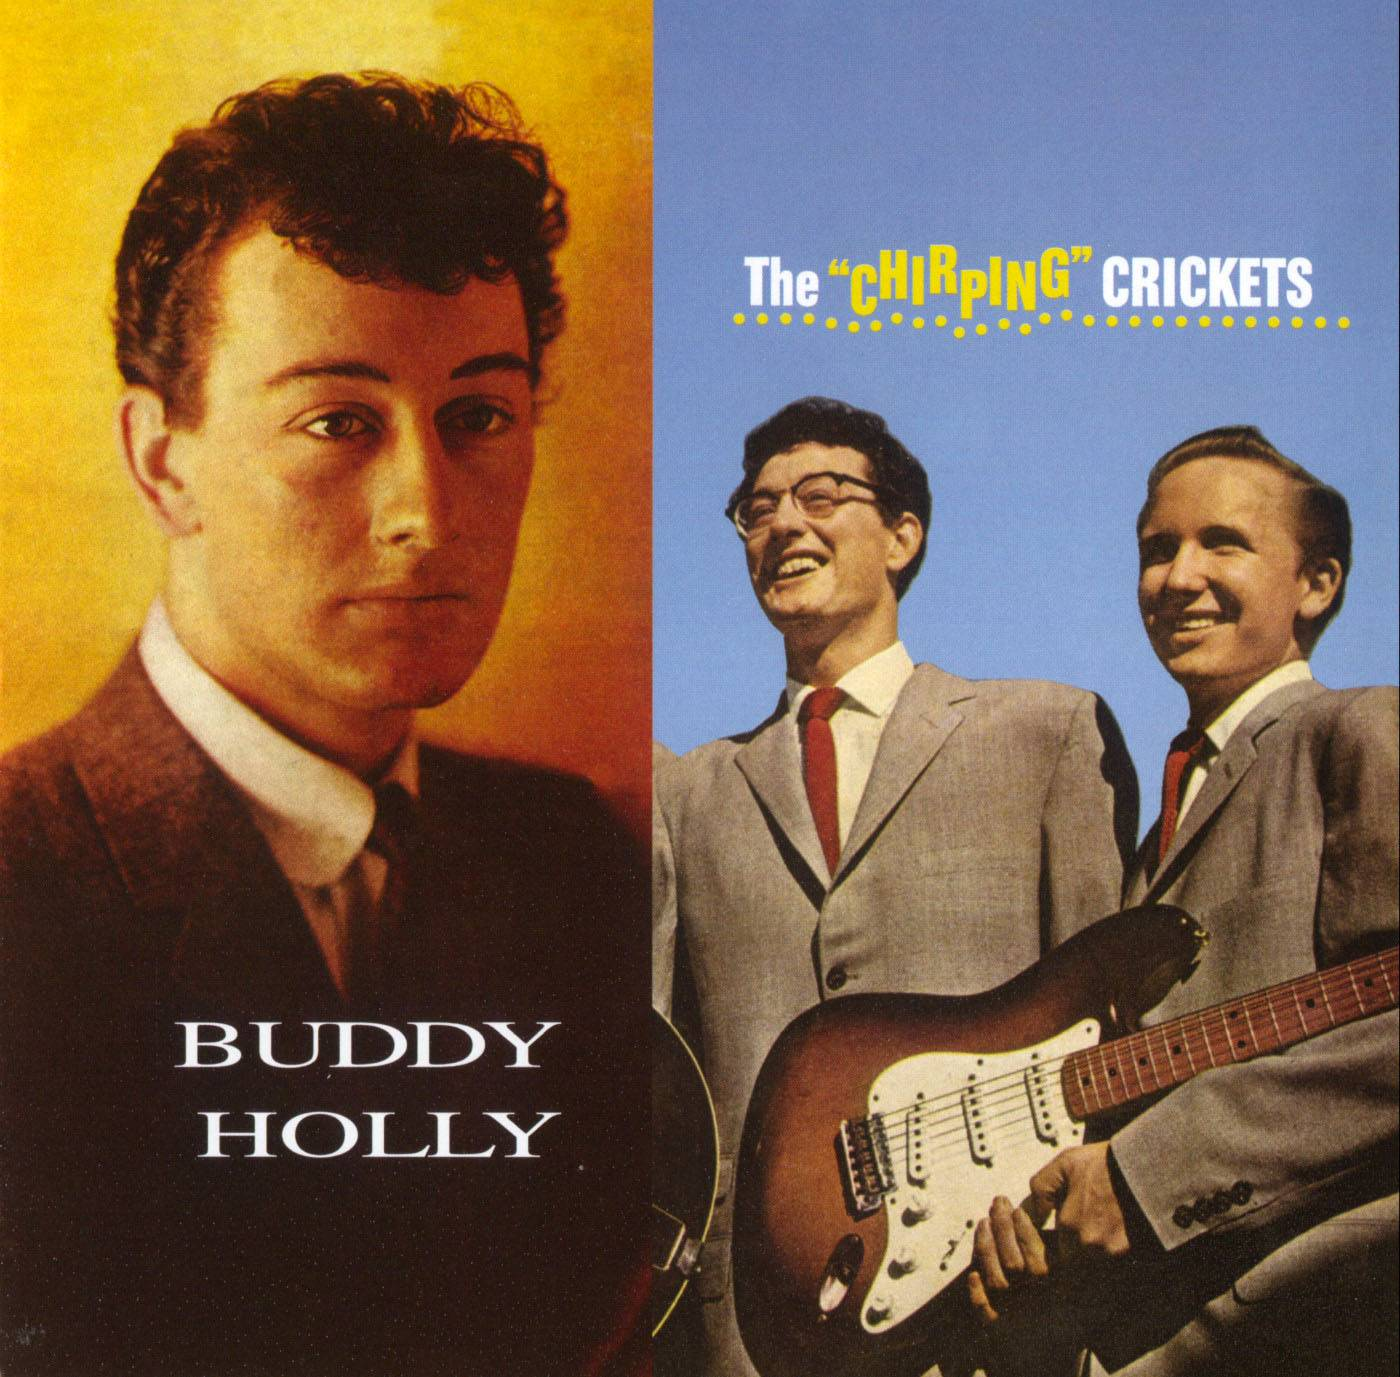 """Buddy Holly & The Crickets - The """"Chirping Crickets"""" (1957) + Buddy Holly (1958) APO Remastered 2017, 2 LP in 1 SACD"""